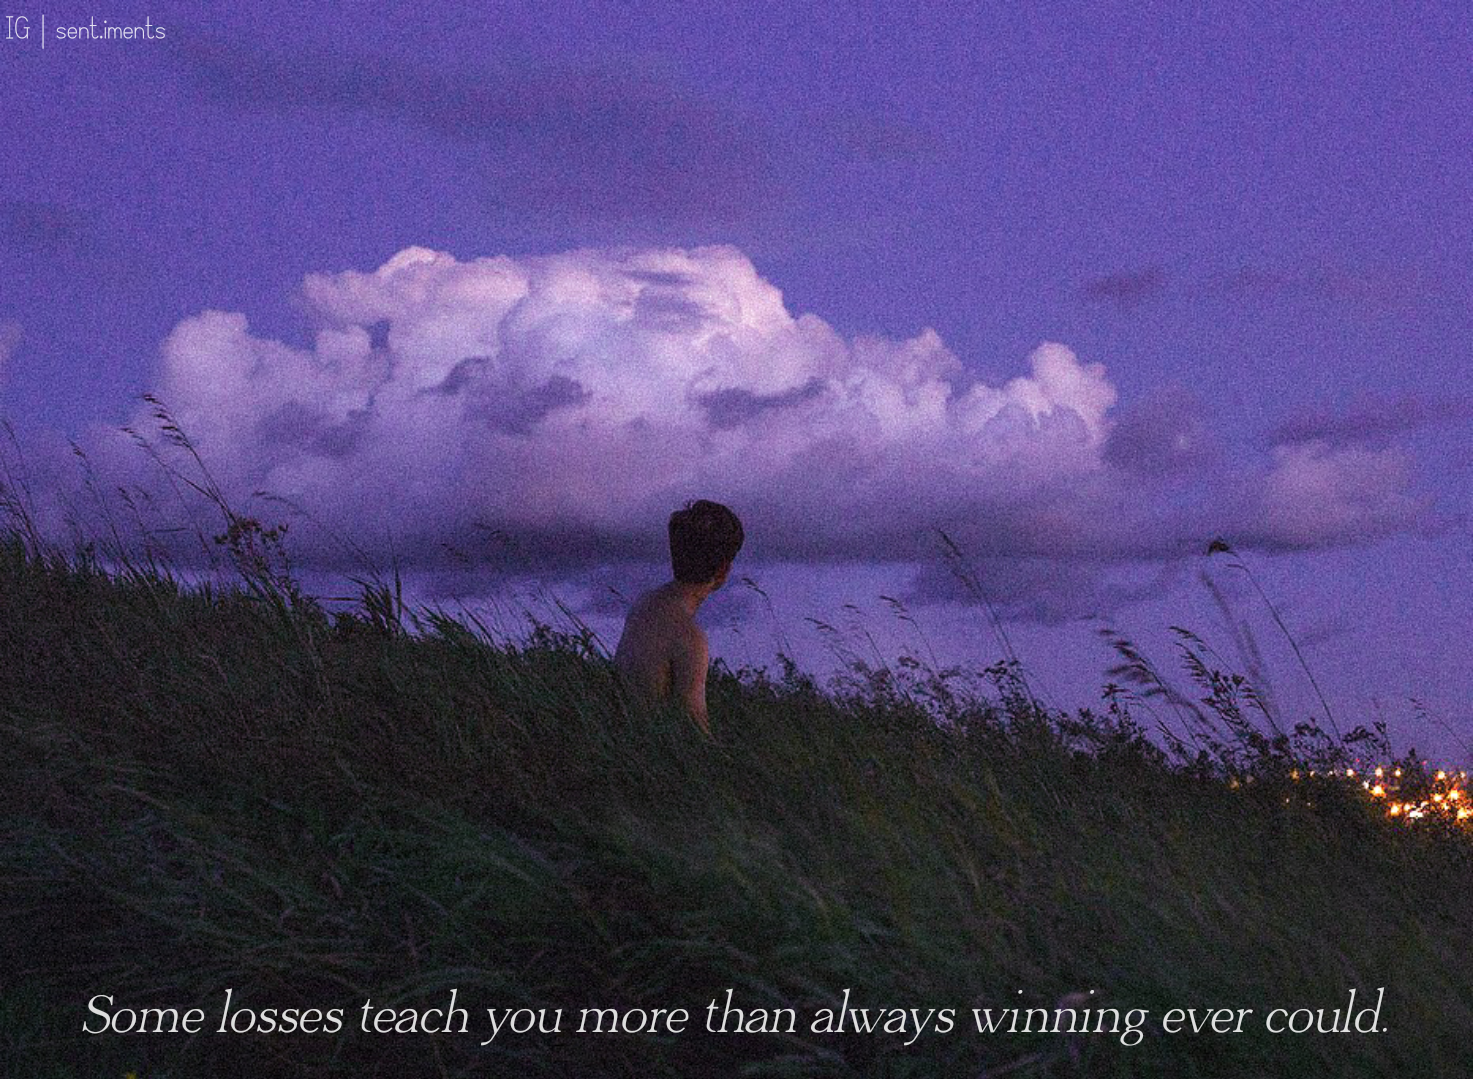 """Some losses teach you more than always winning ever could."" by Big Sean [1473 X 1079]"